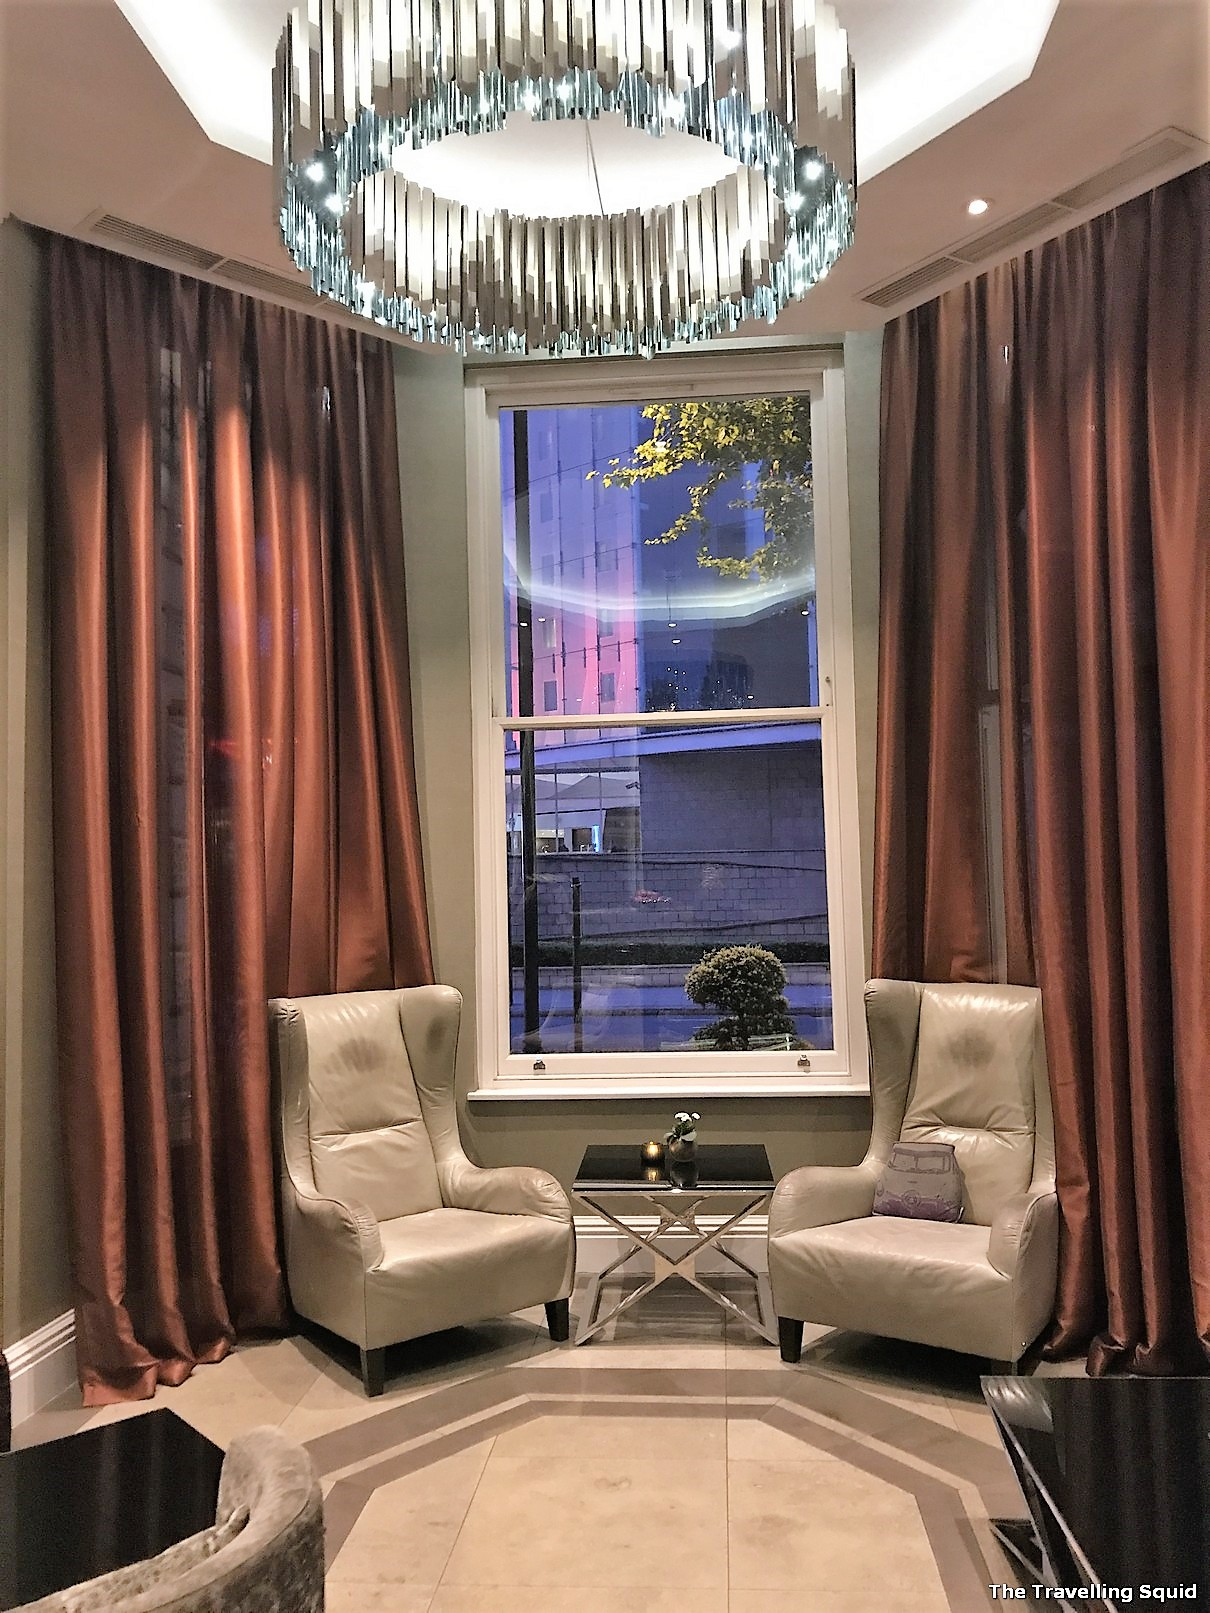 Hotel Xenia near Earls Court London